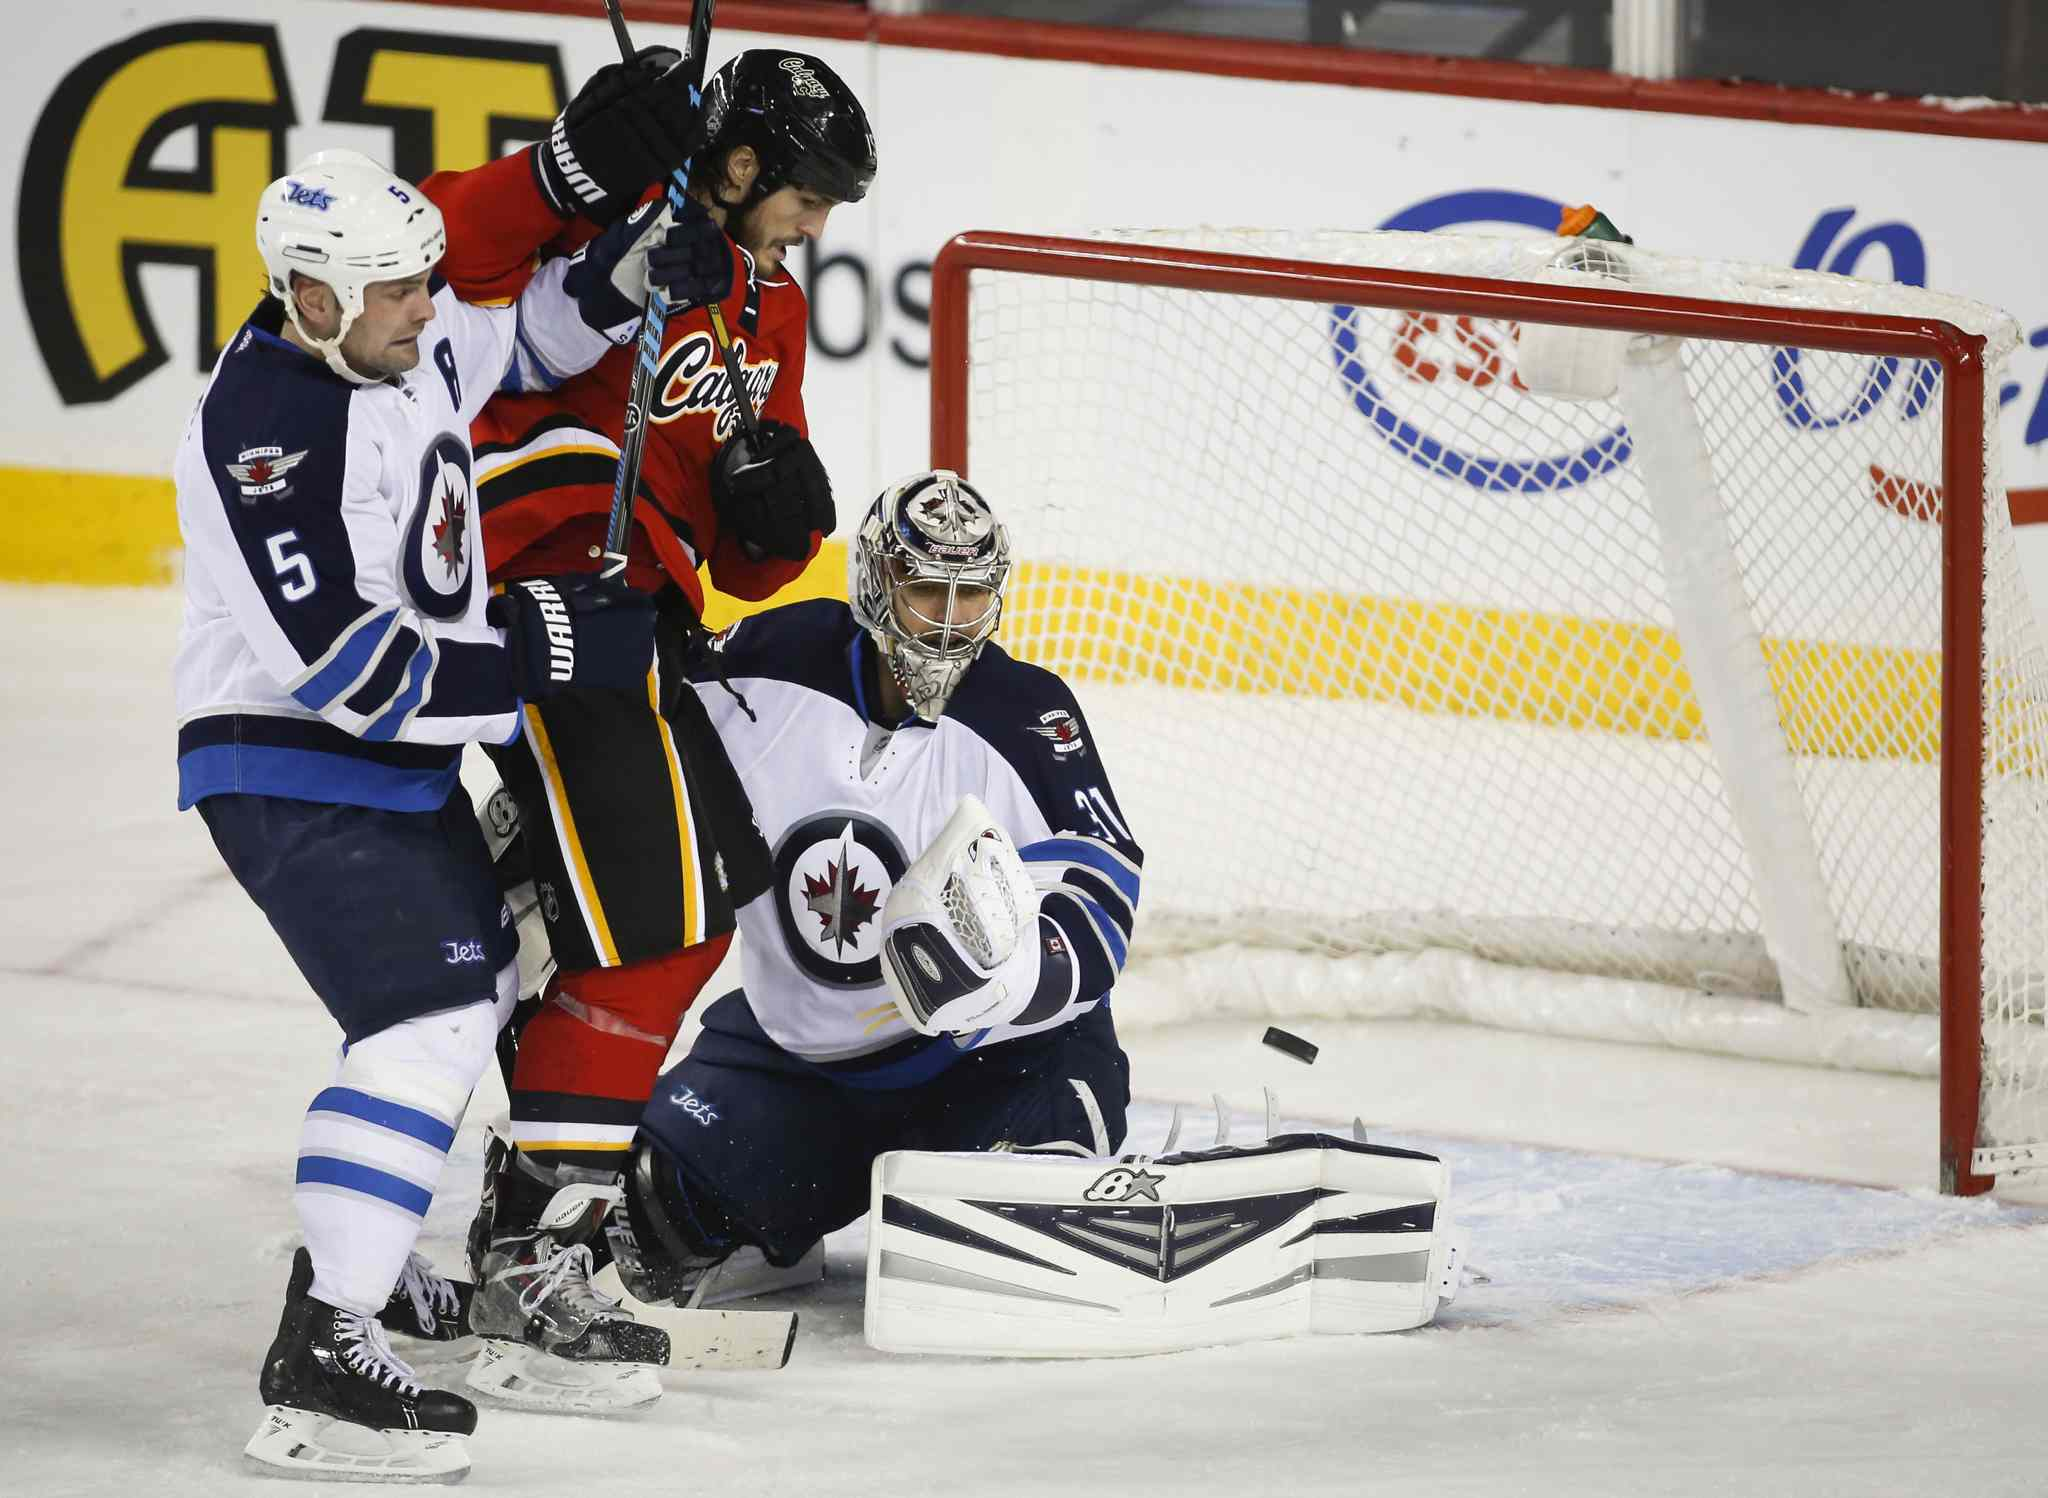 Winnipeg Jets' goalie Ondrej Pavelec, right, watches a rebound as teammate Mark Stuart checks Calgary Flames' Kevin Westgarth in the second period Thursday.